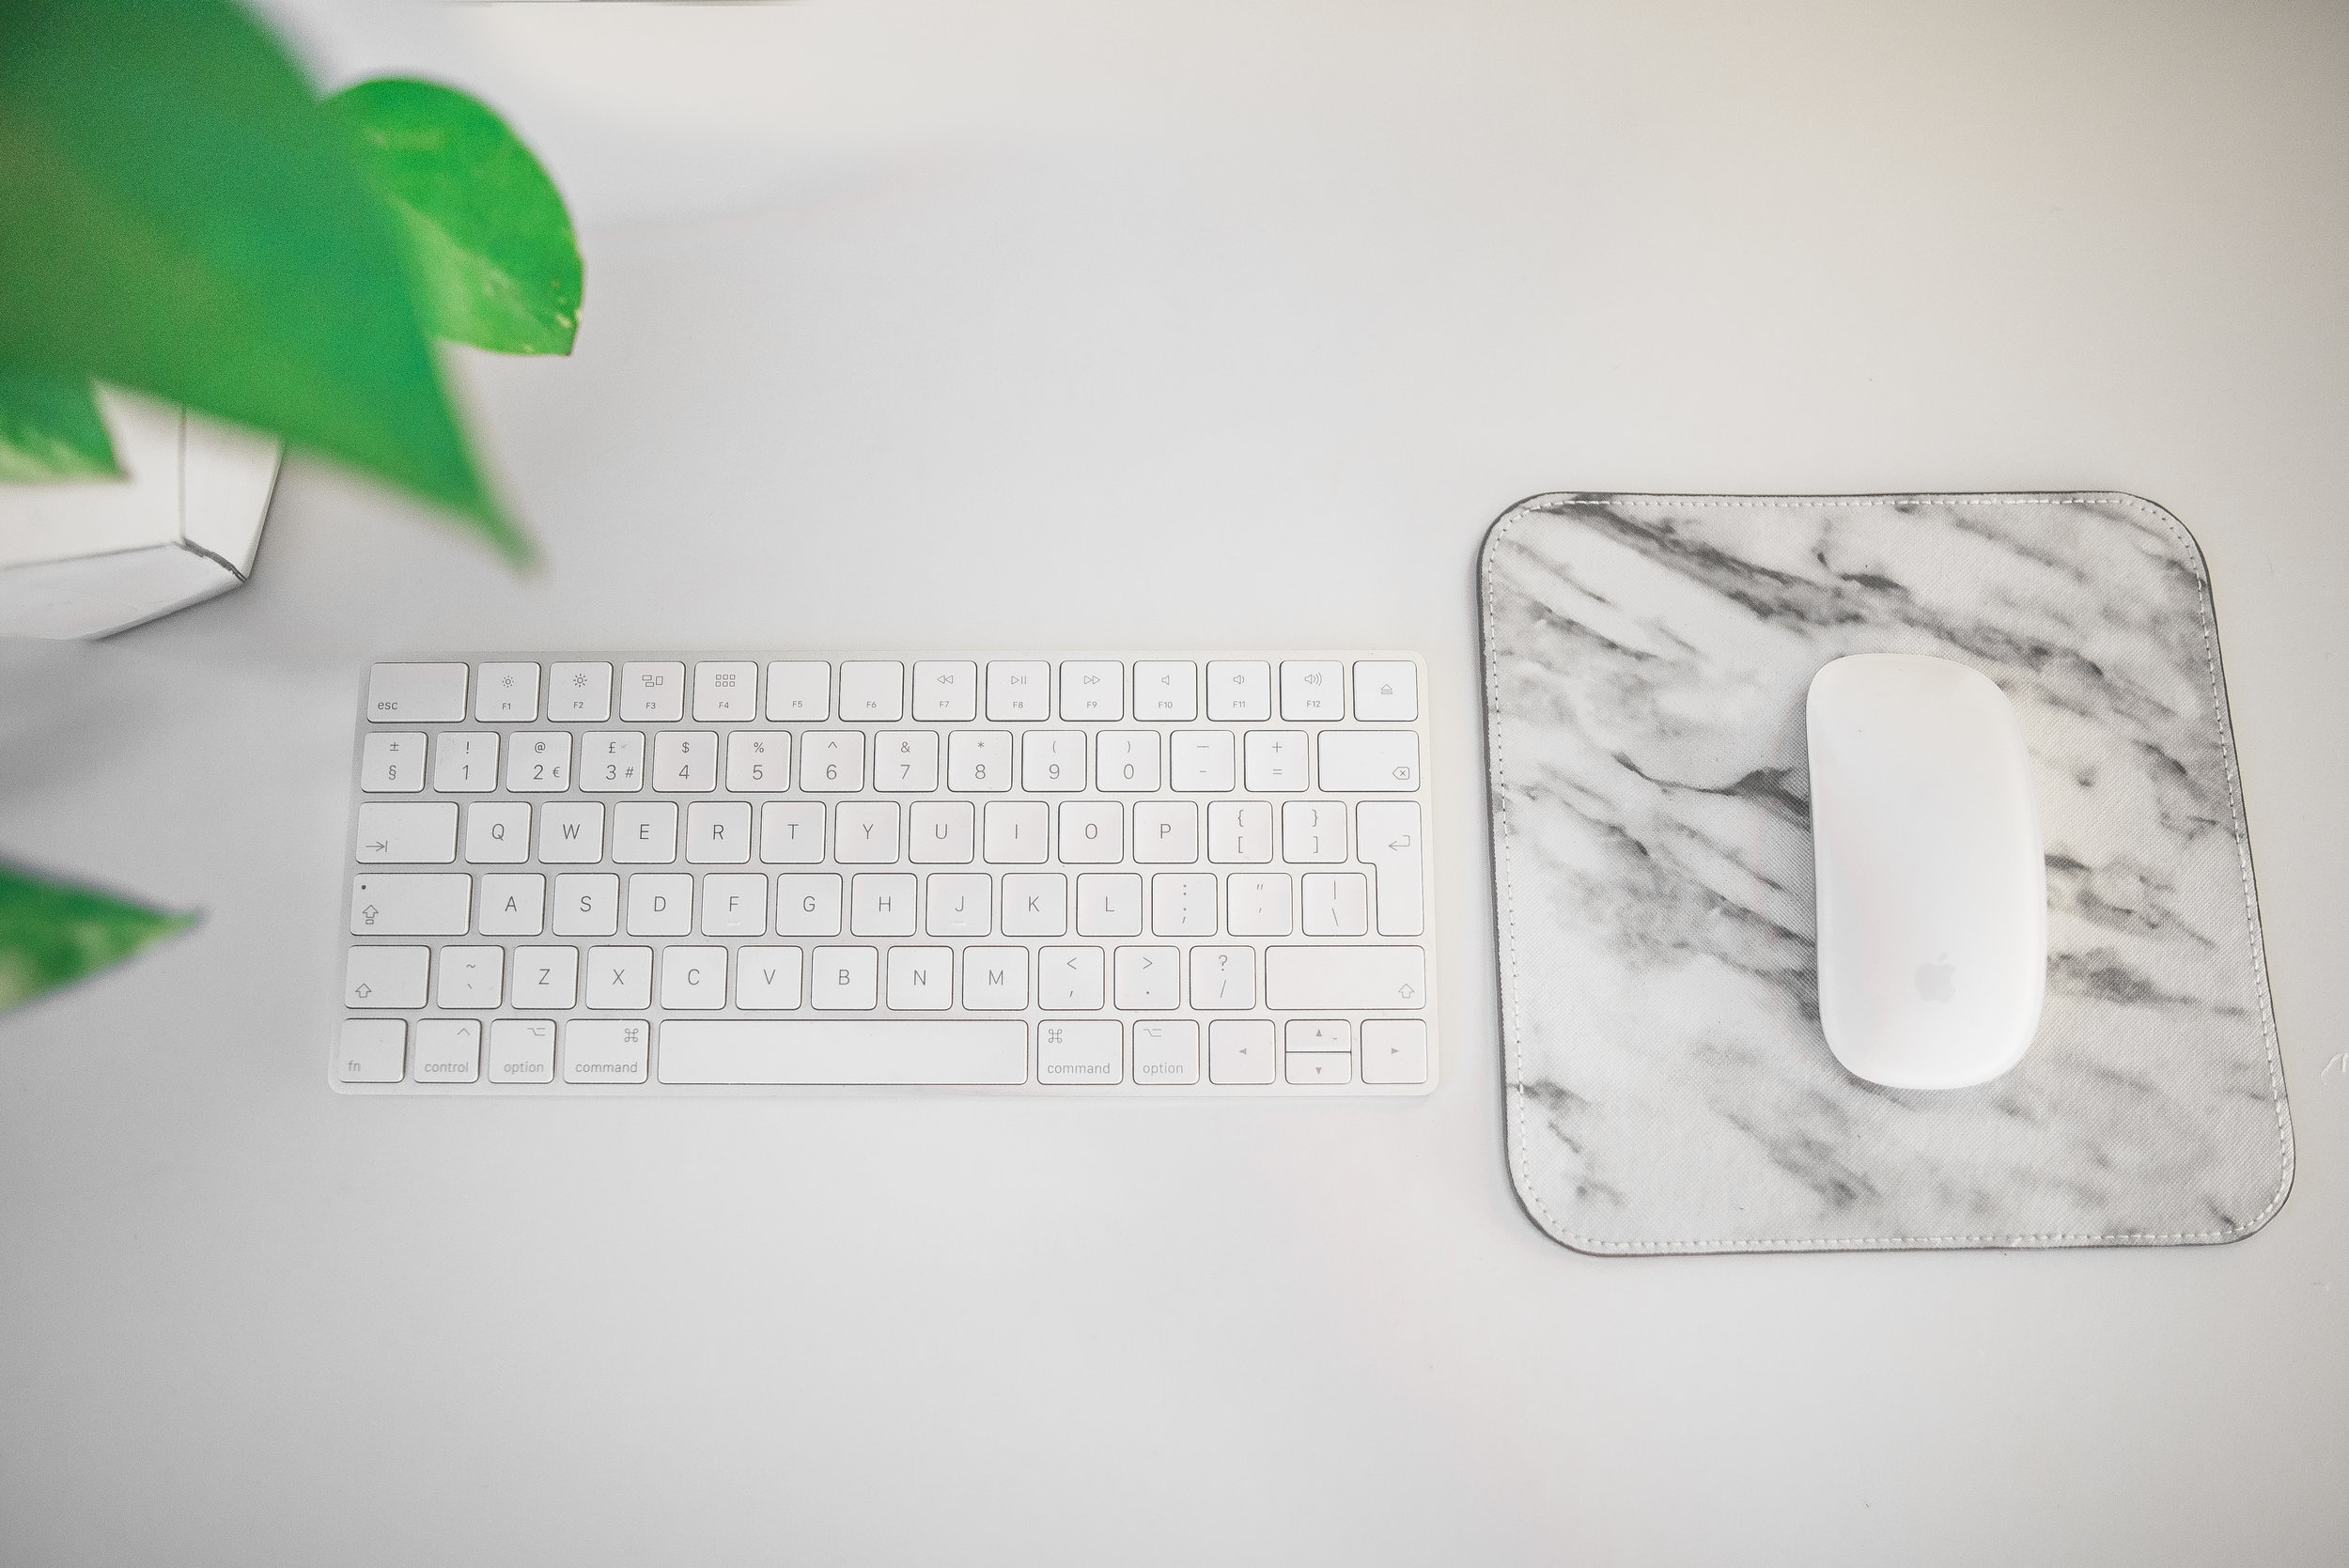 keyboard and mouse on a desk